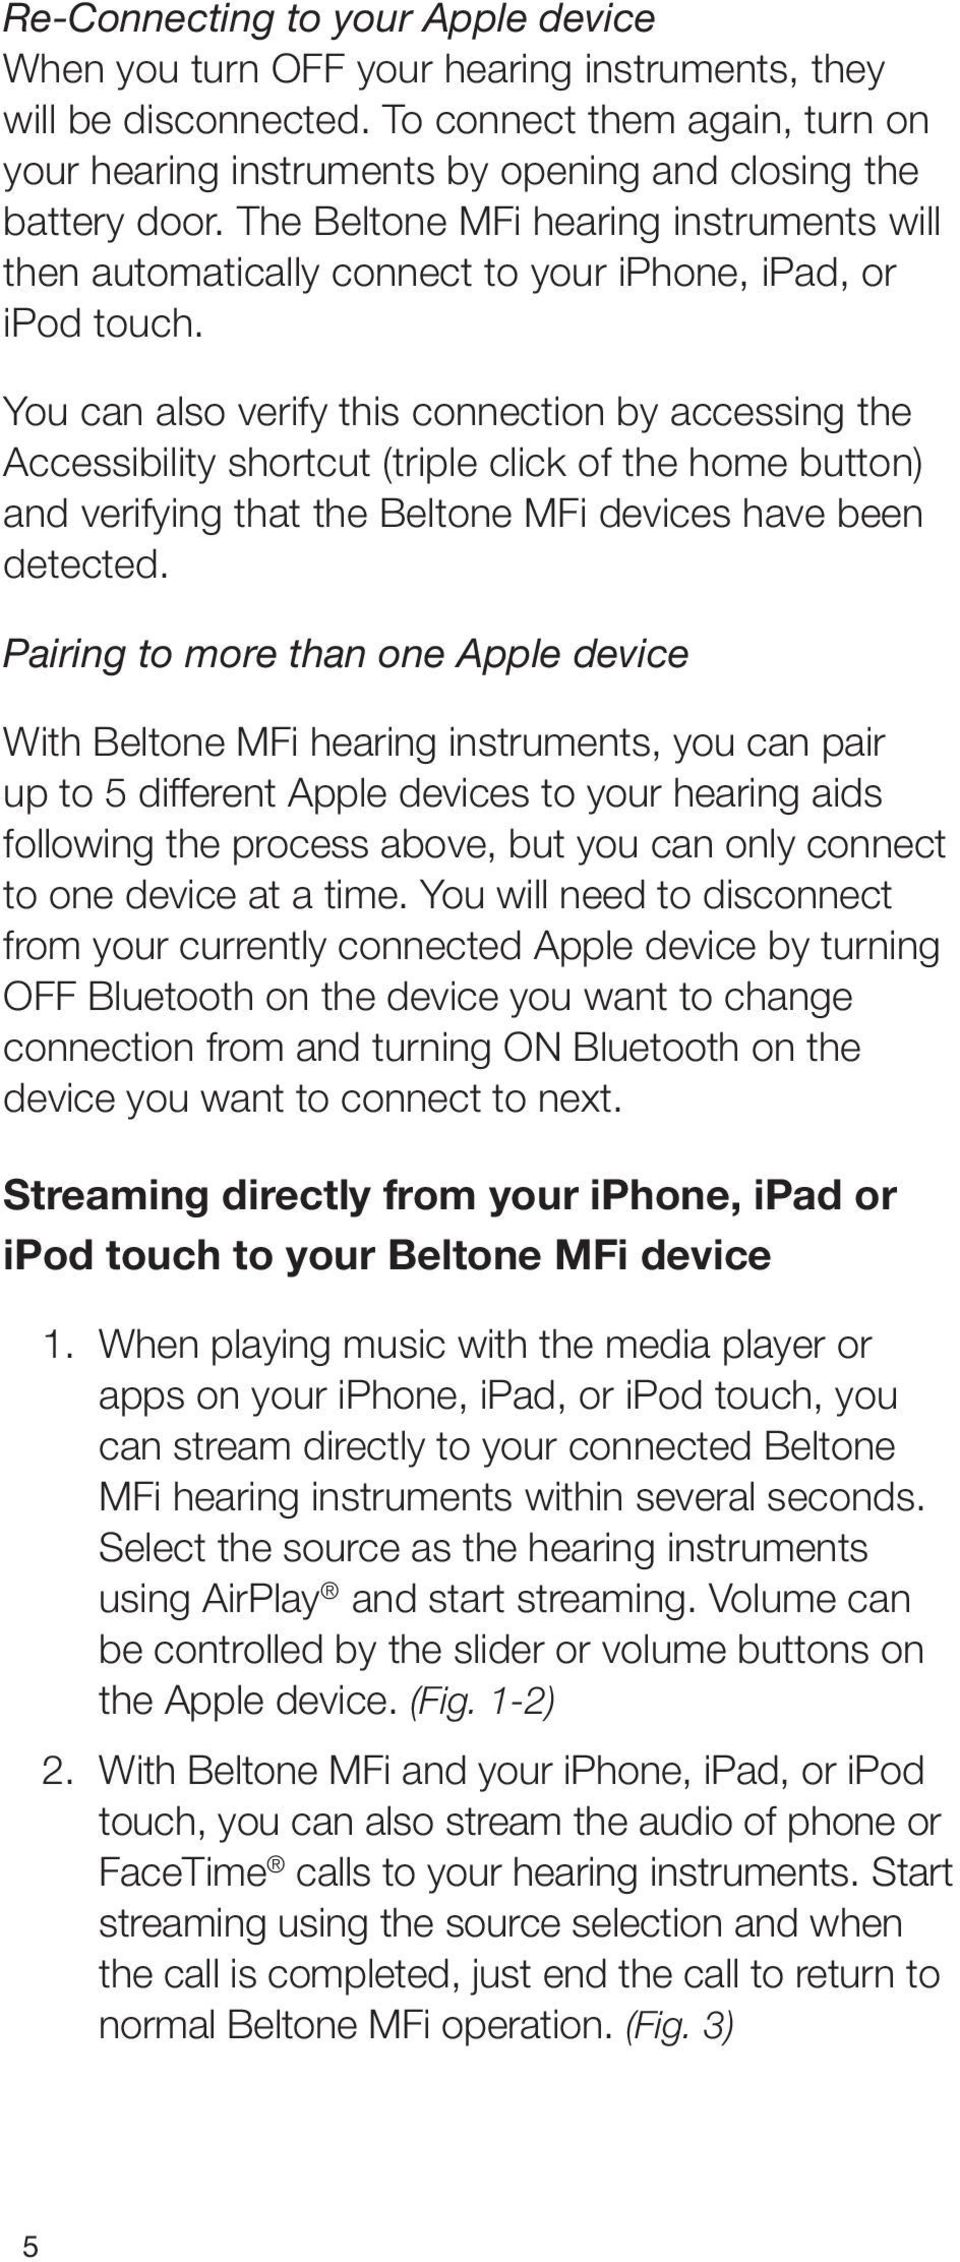 The Beltone MFi hearing instruments will then automatically connect to your iphone, ipad, or ipod touch.